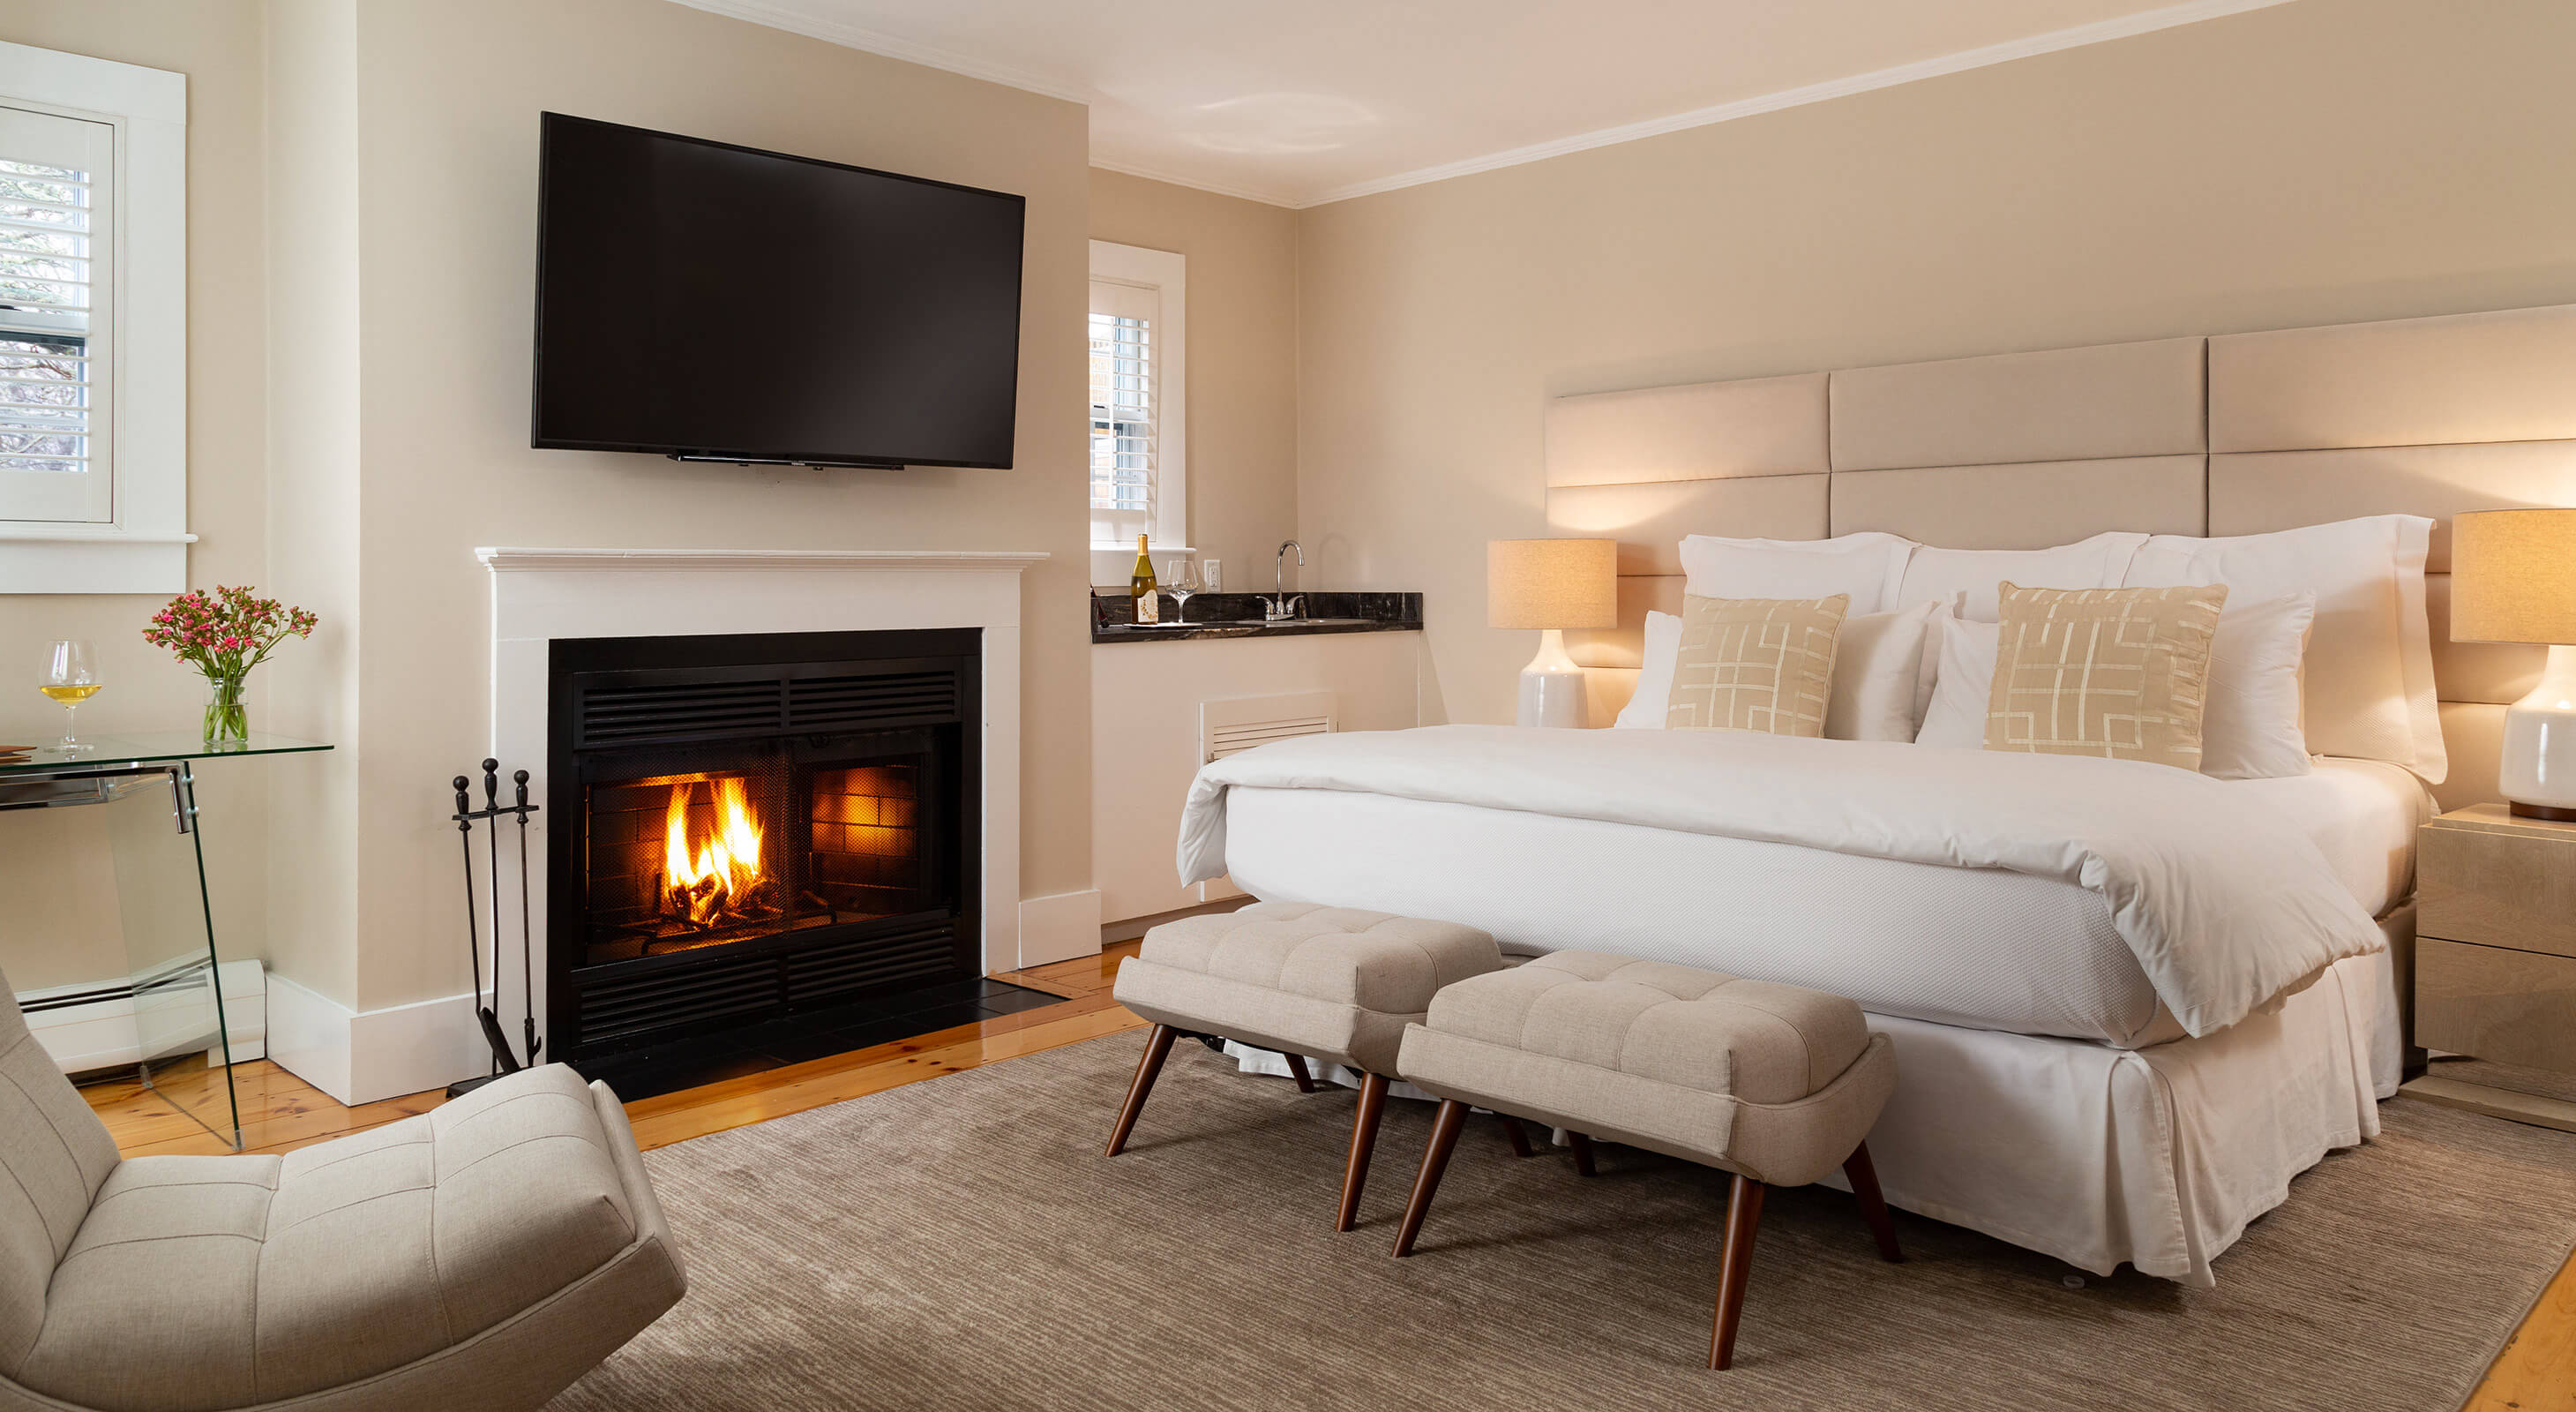 Room 3 fireplace and bed